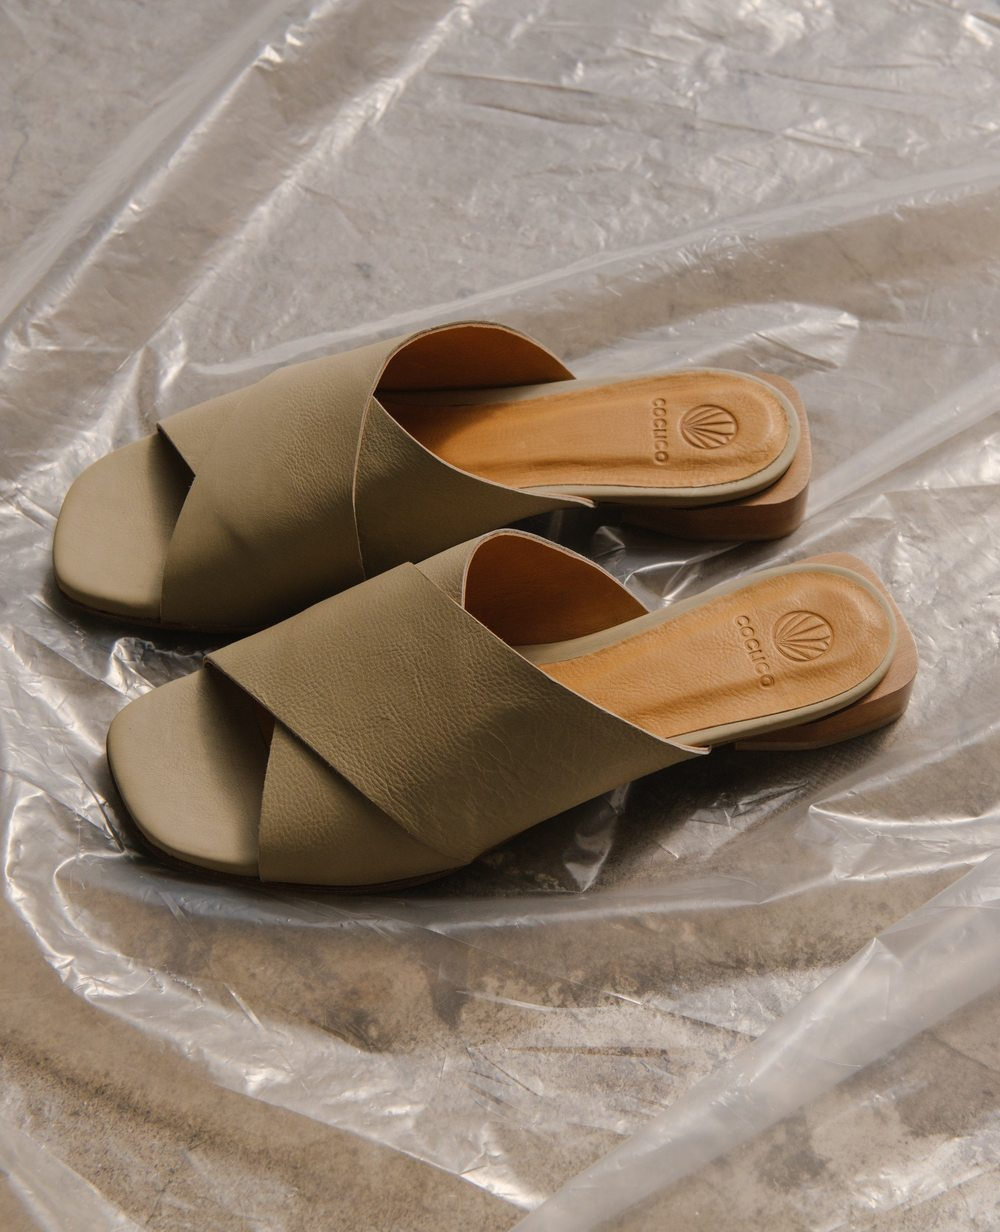 sandals from slow fashion brand Coclico